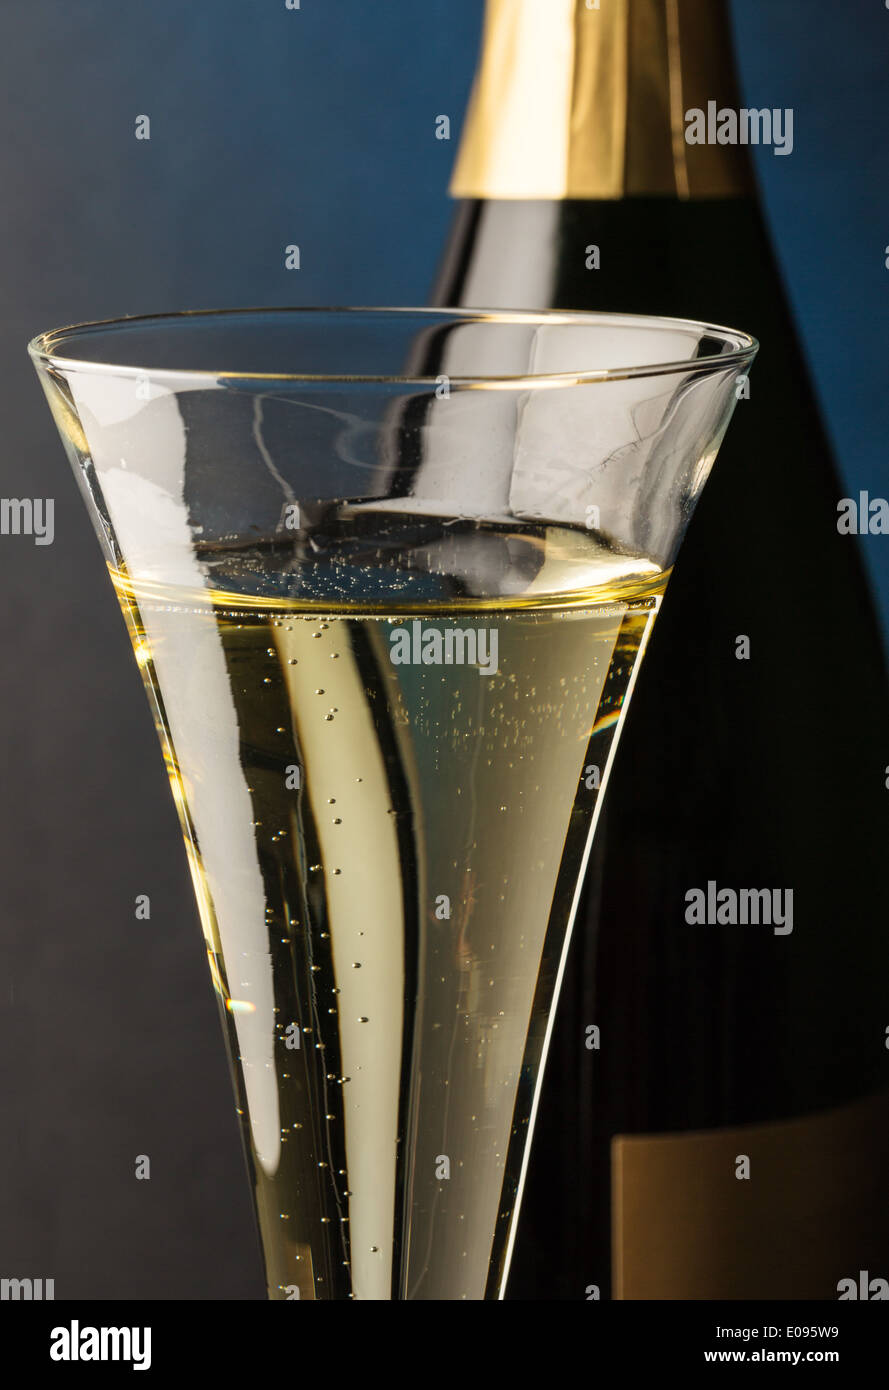 Champagne bottle with champagne glass. Symbolic photo fue celebrations and turns of the year., Champagnerflasche mit Sektglas. S - Stock Image